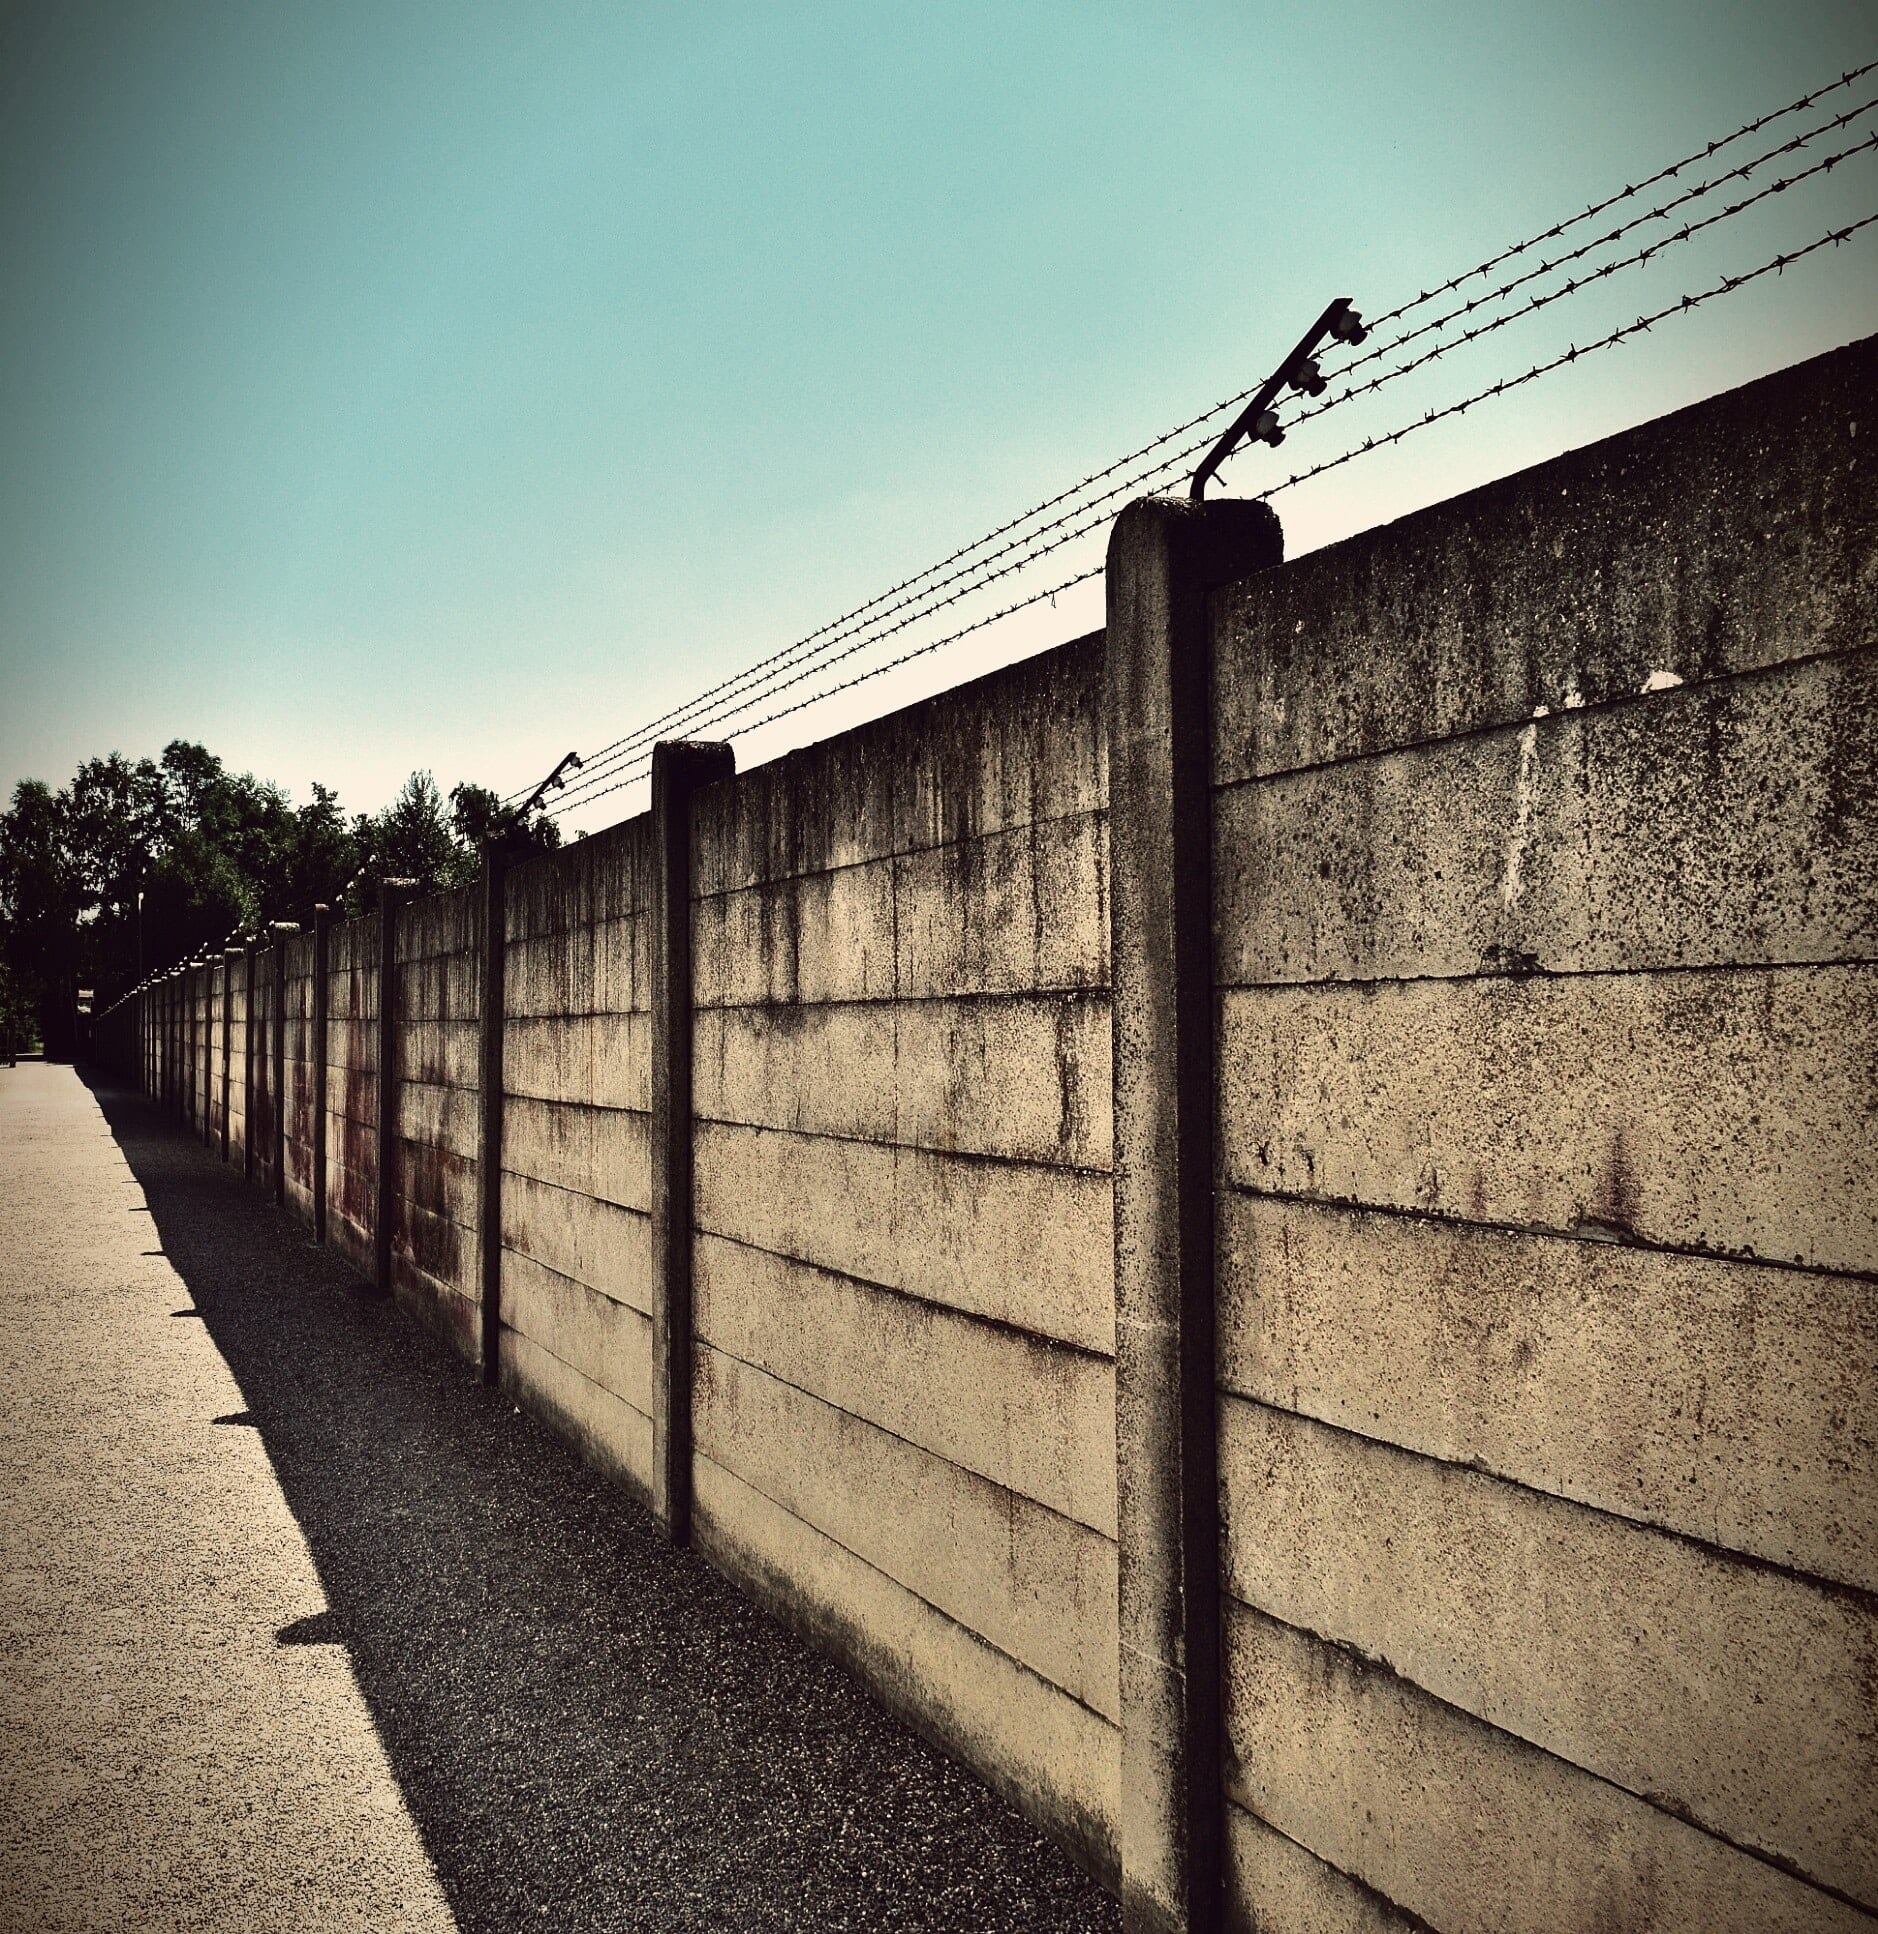 Wall used for facility physical security.